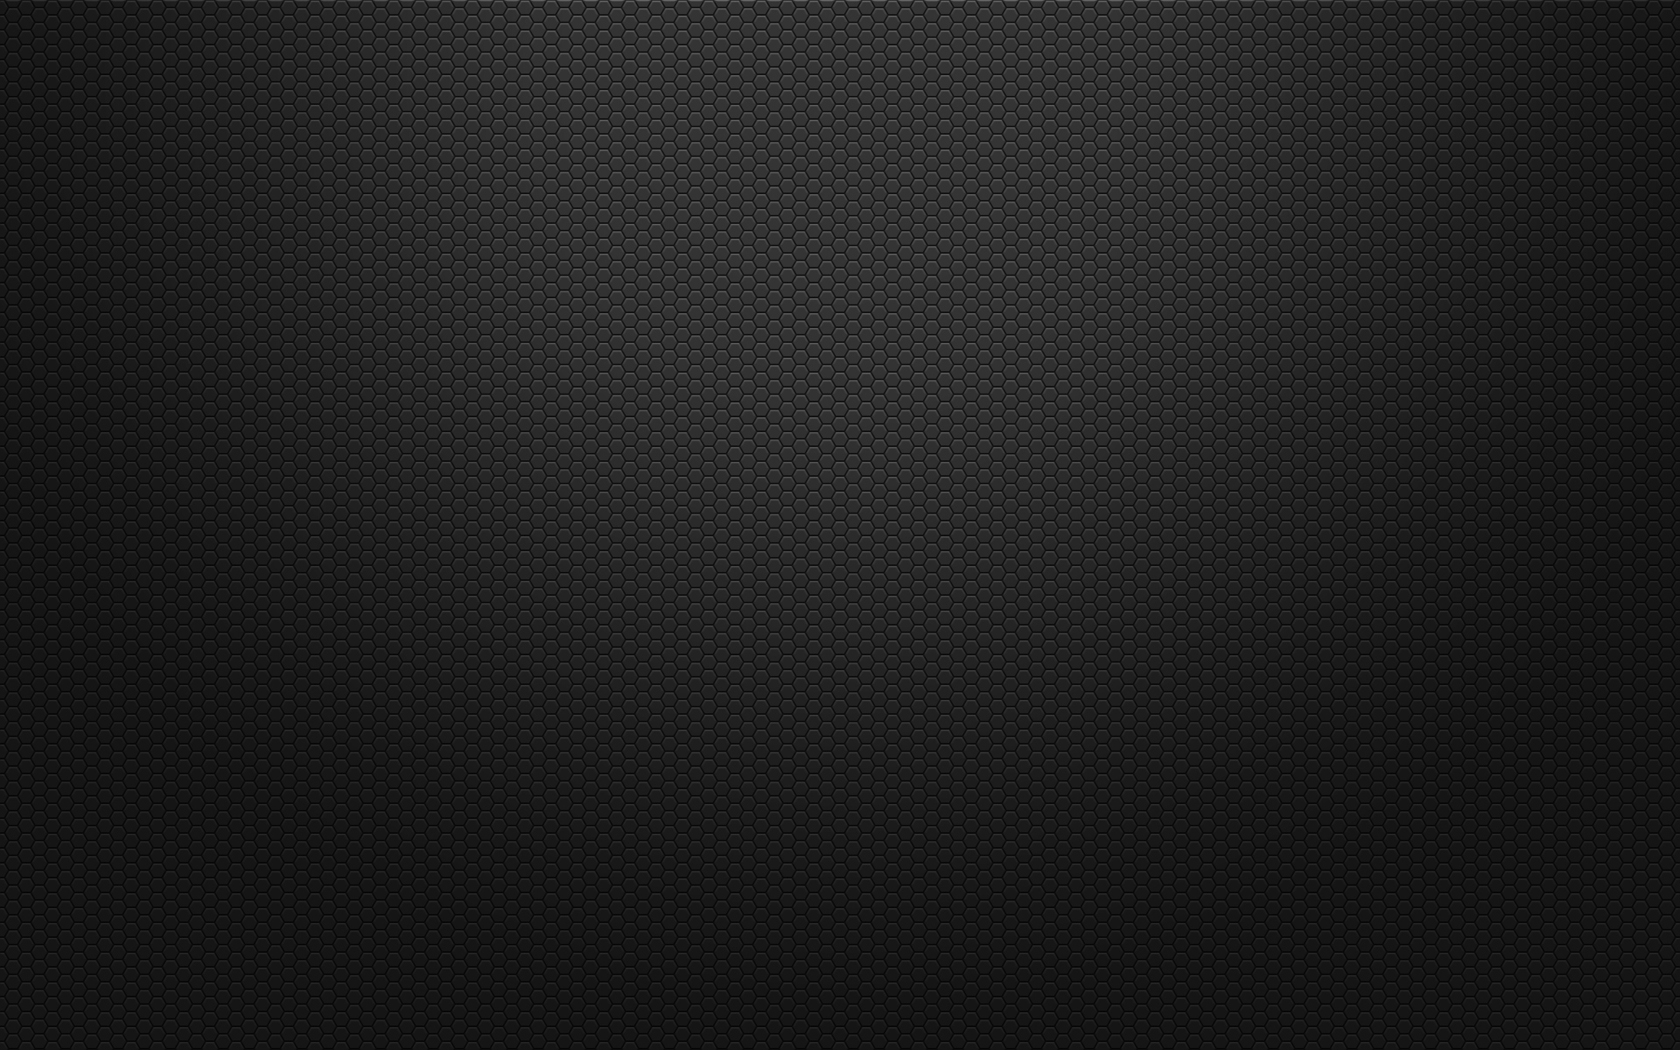 Hd simple wallpapers hd wallpapers arena Black Background and some 1680x1050